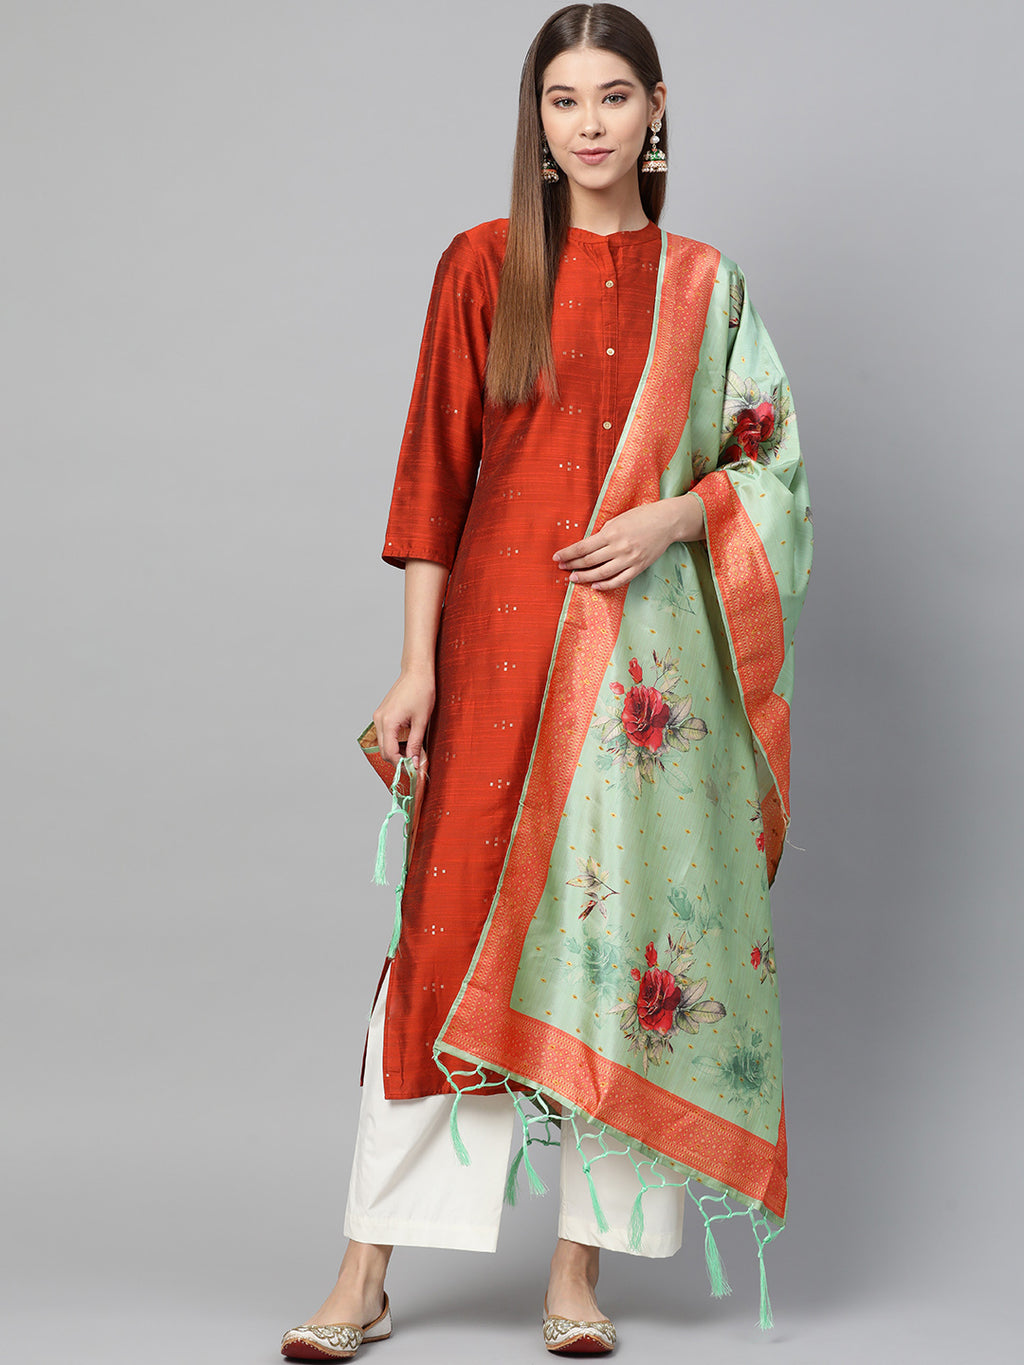 Sea Green Color Jacquard Silk Festive Wear Dupatta NYF-8185